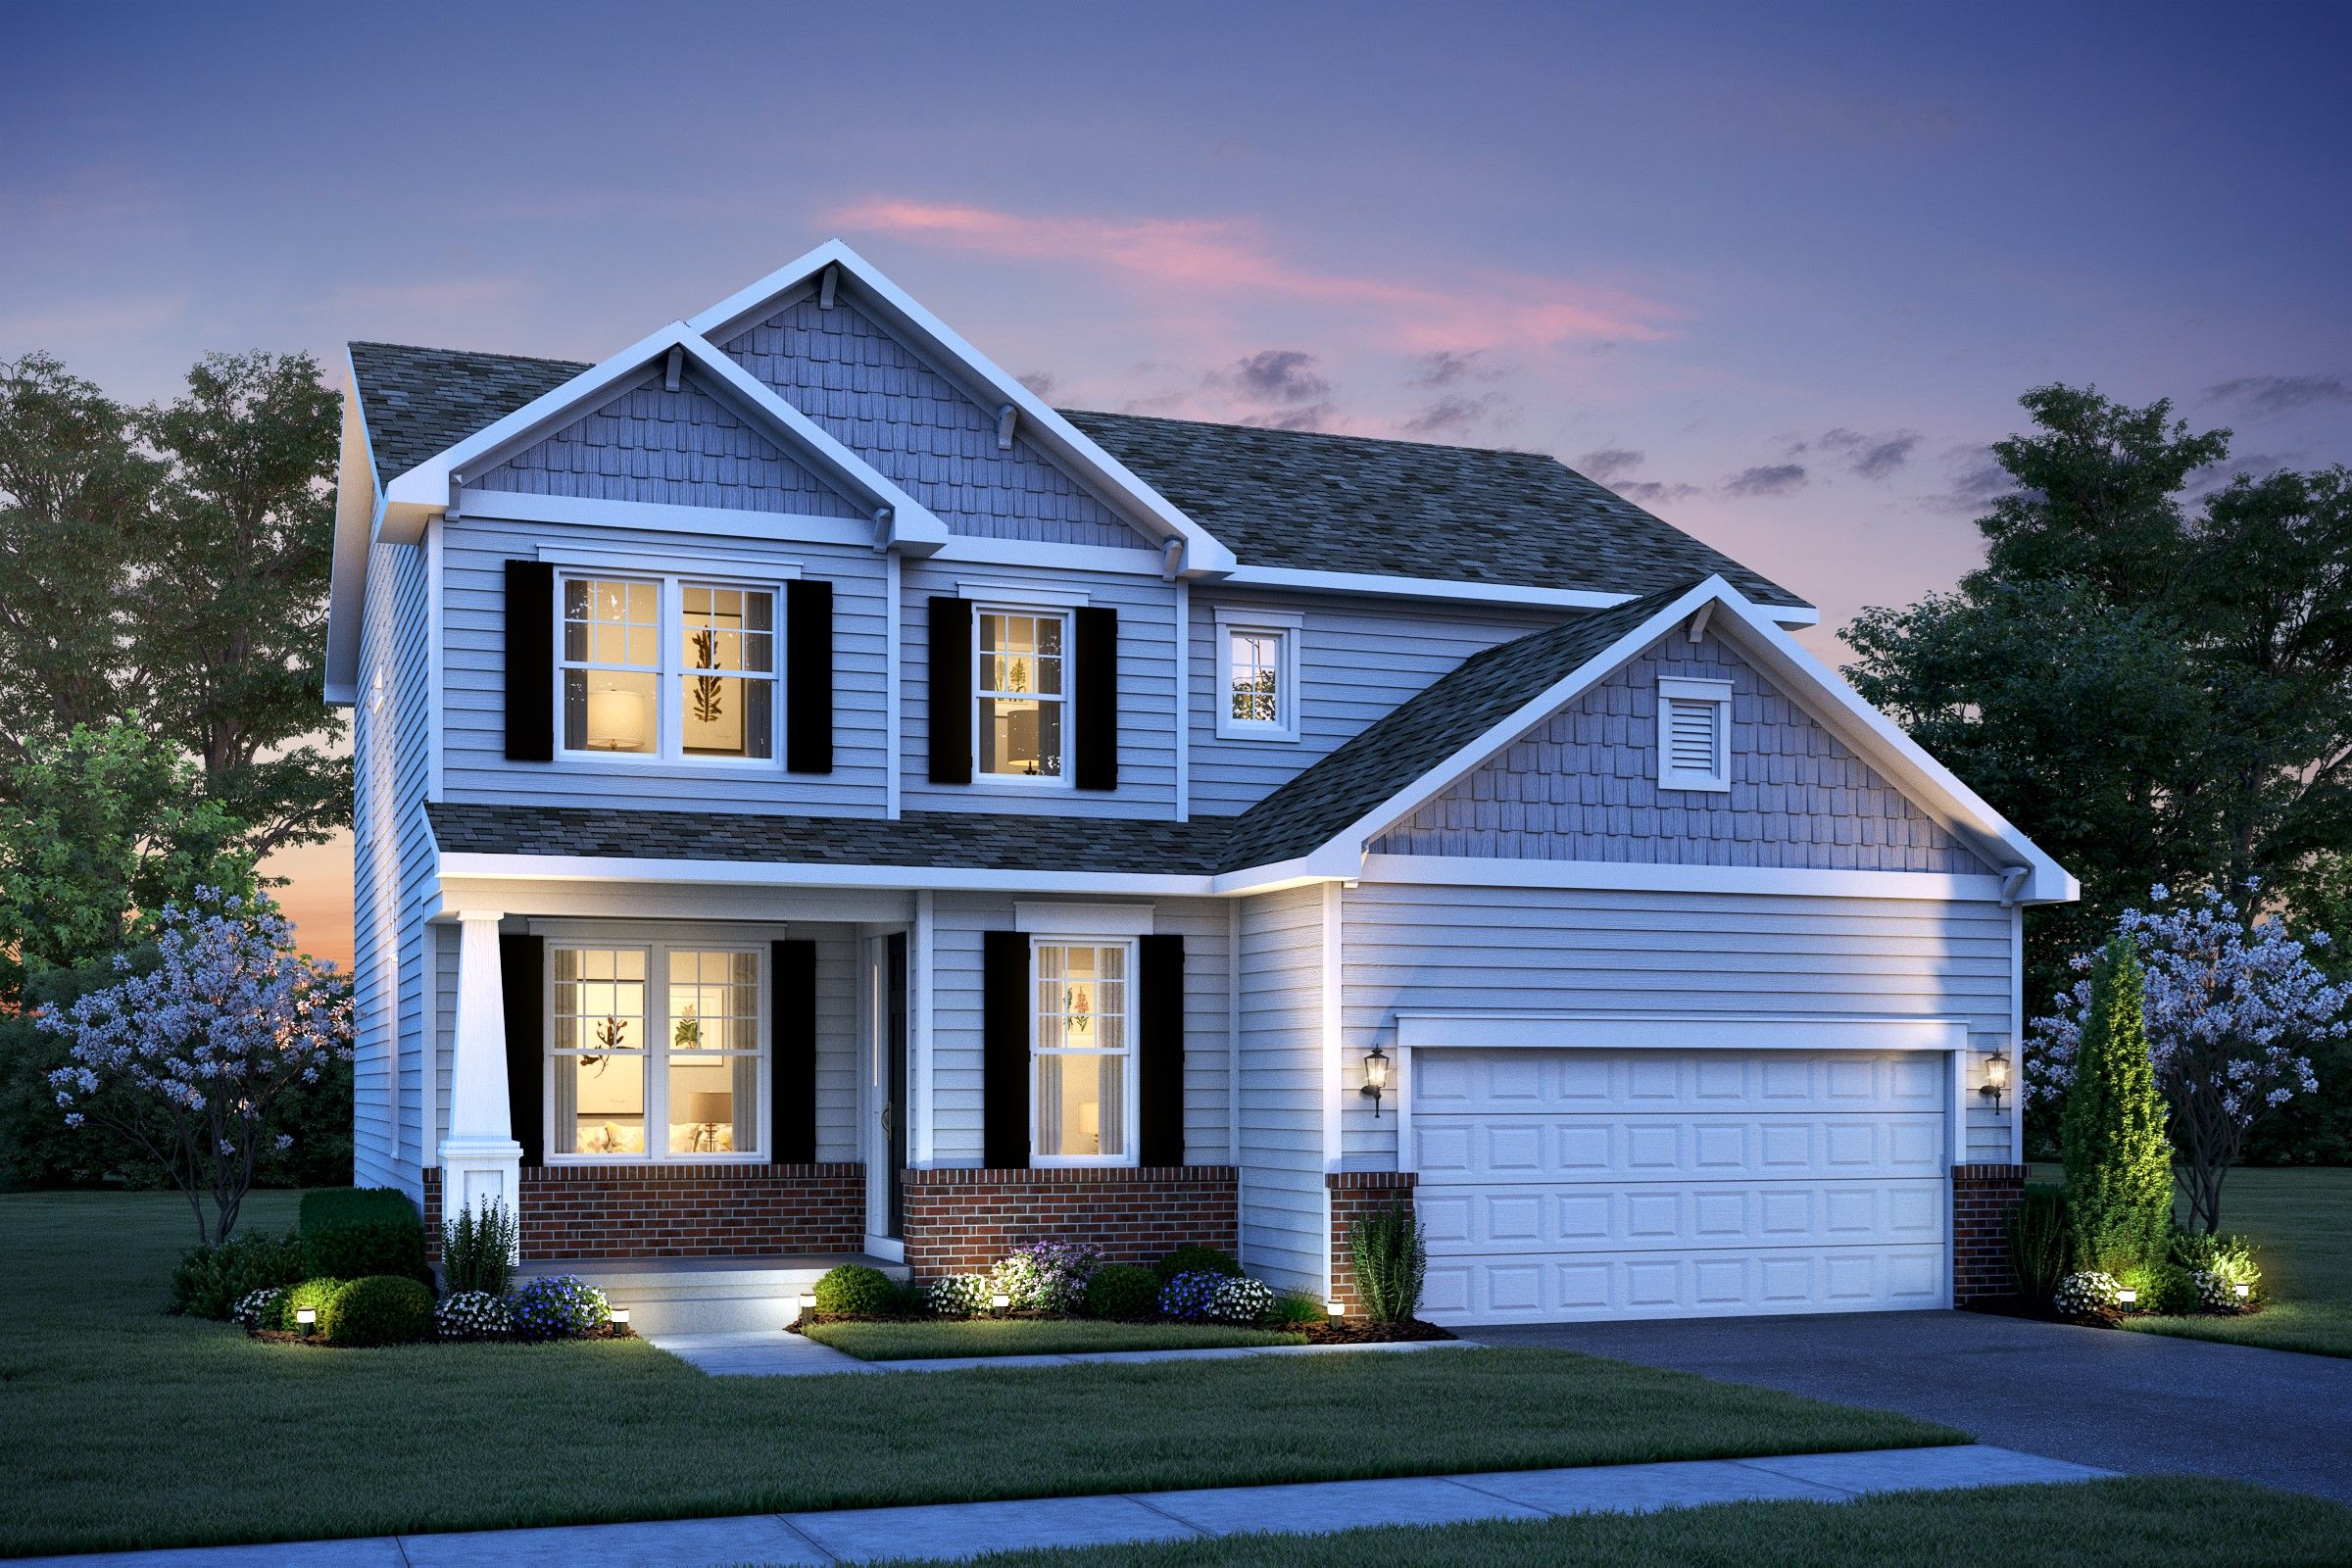 Single Family for Sale at Meadow Brook At Hillsborough - Haddenfield Ii Passe Court Hillsborough, New Jersey 08844 United States